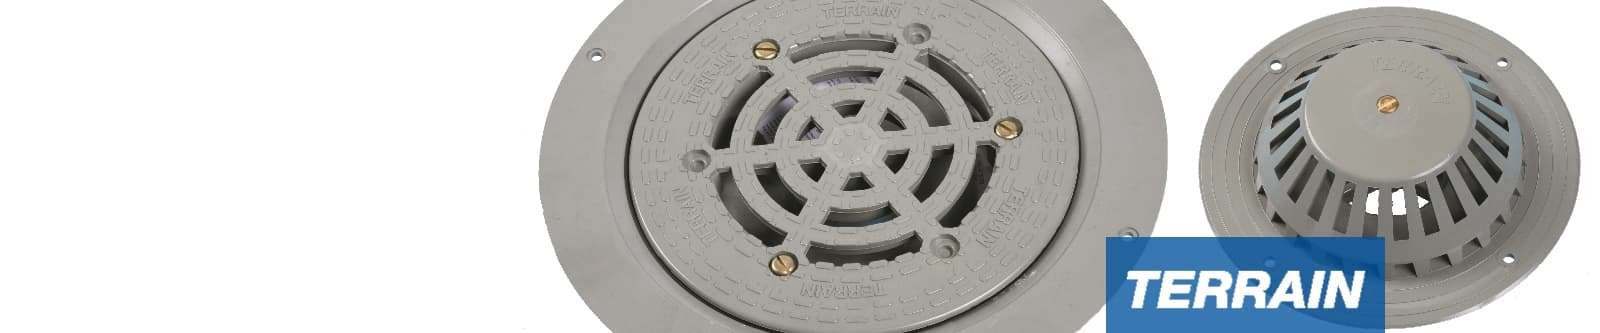 Terrain Rainwater Outlets for Commercial and Public Buildings